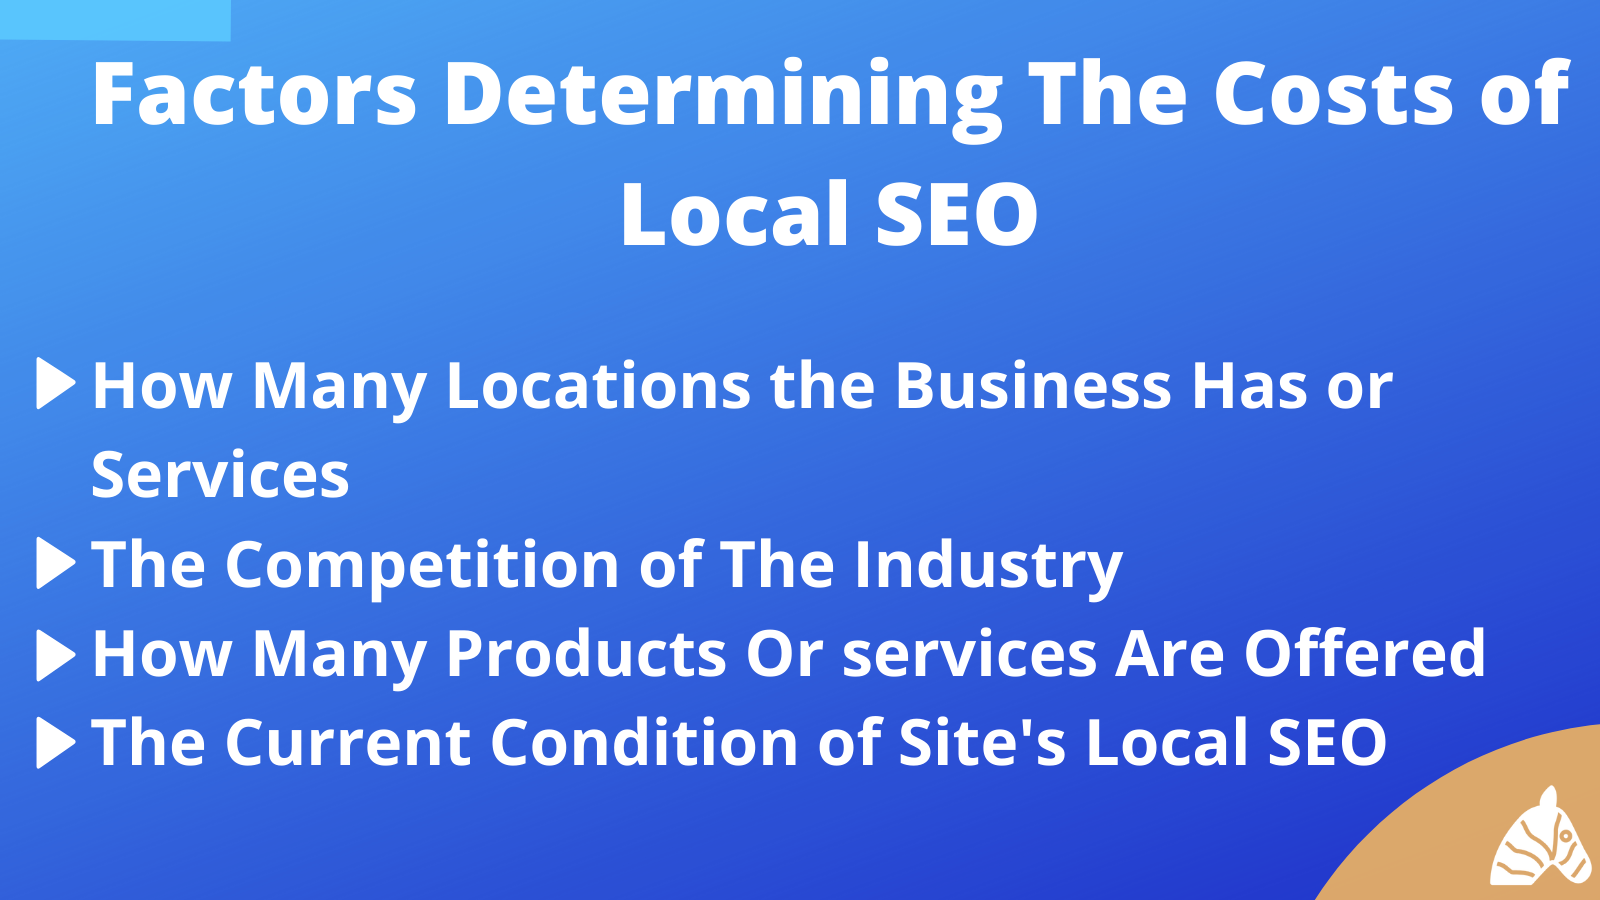 factors determining local SEO costs